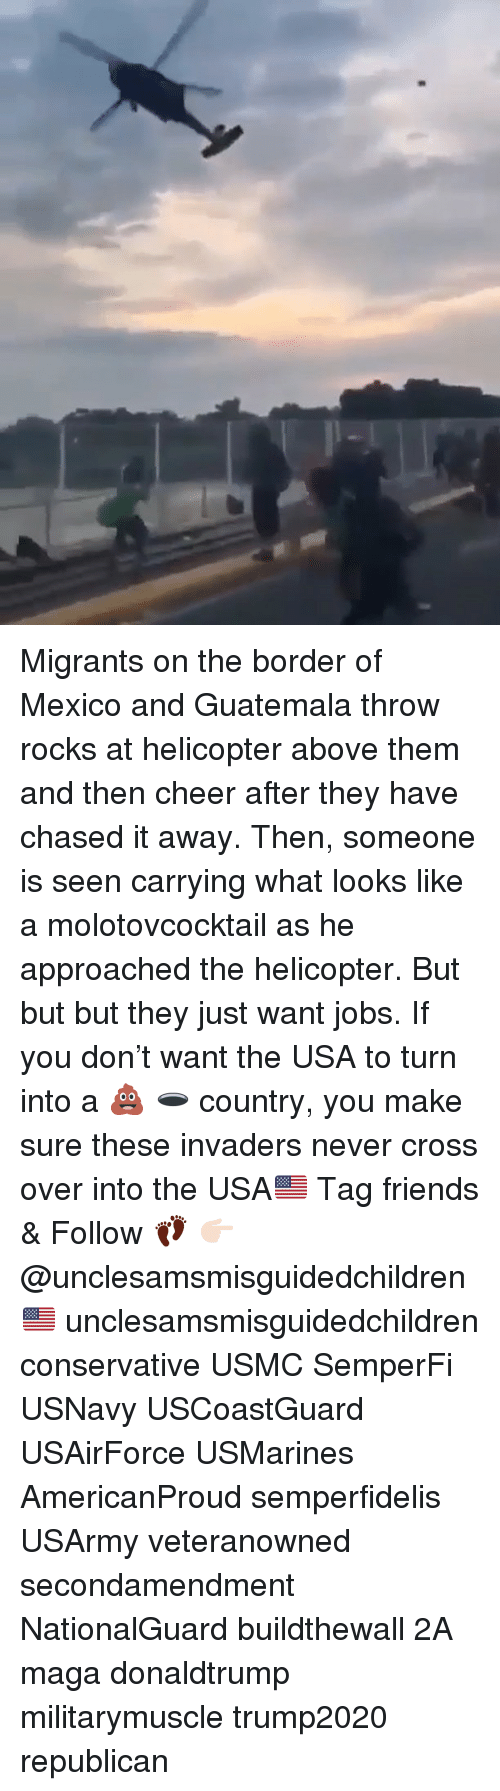 Invaders: Migrants on the border of Mexico and Guatemala throw rocks at helicopter above them and then cheer after they have chased it away. Then, someone is seen carrying what looks like a molotovcocktail as he approached the helicopter. But but but they just want jobs. If you don't want the USA to turn into a 💩 🕳 country, you make sure these invaders never cross over into the USA🇺🇸 Tag friends & Follow 👣 👉🏻 @unclesamsmisguidedchildren 🇺🇸 unclesamsmisguidedchildren conservative USMC SemperFi USNavy USCoastGuard USAirForce USMarines AmericanProud semperfidelis USArmy veteranowned secondamendment NationalGuard buildthewall 2A maga donaldtrump militarymuscle trump2020 republican